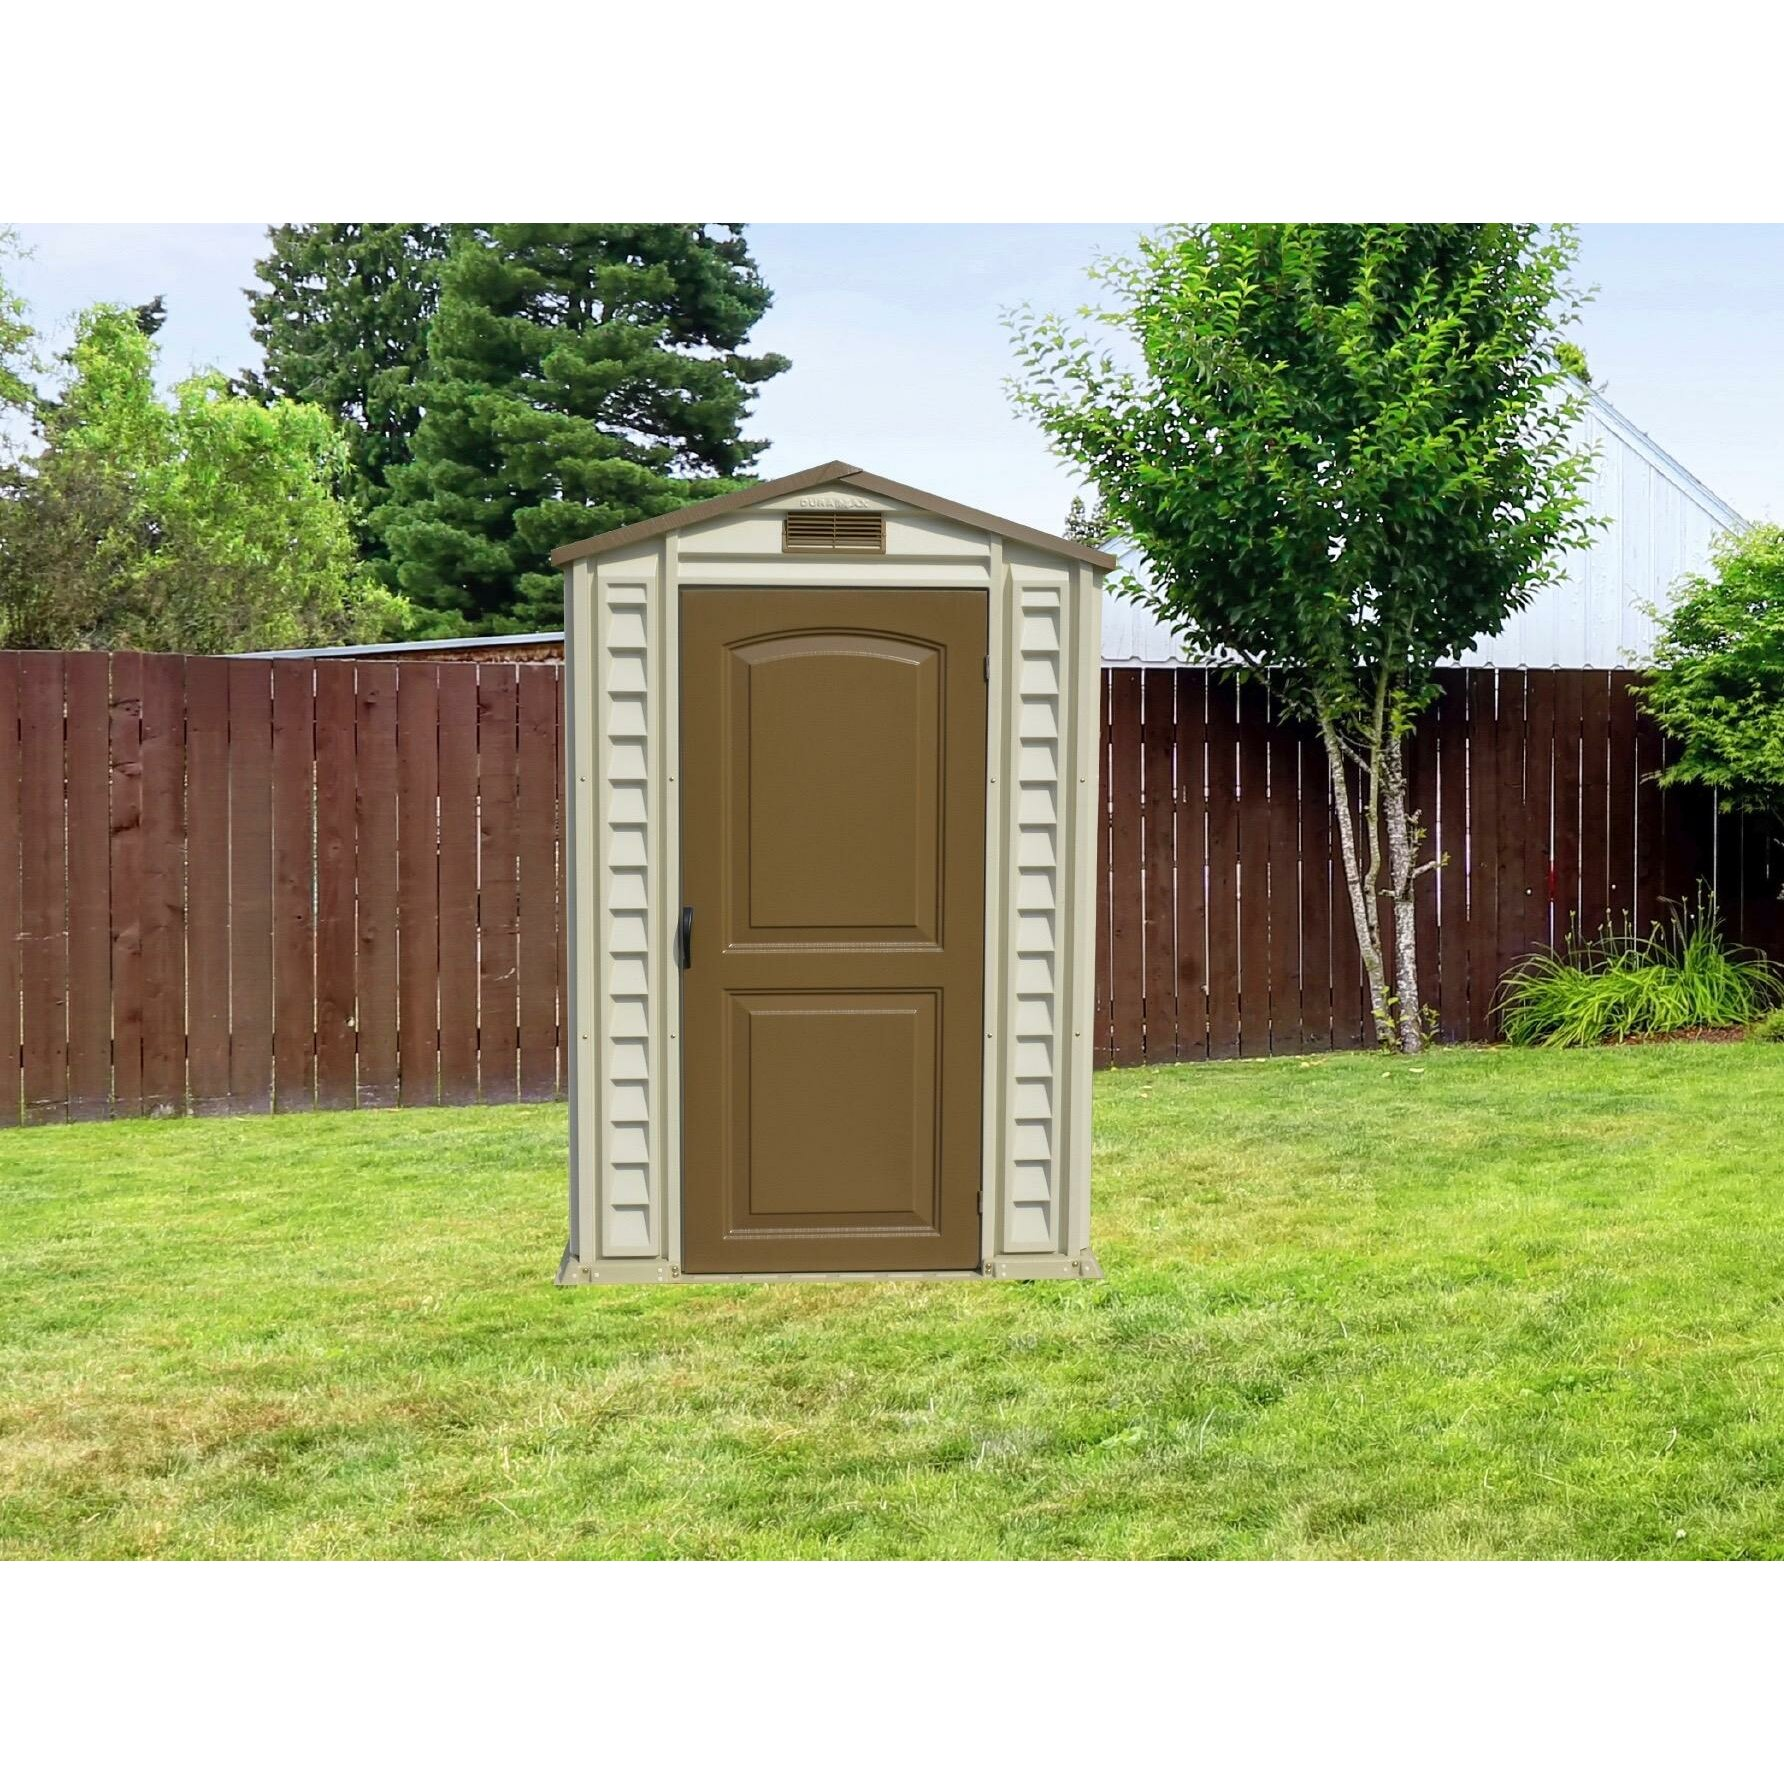 Duramax 4 ft w x 6 ft d fire retardant vinyl storage for Garden shed 4 x 3